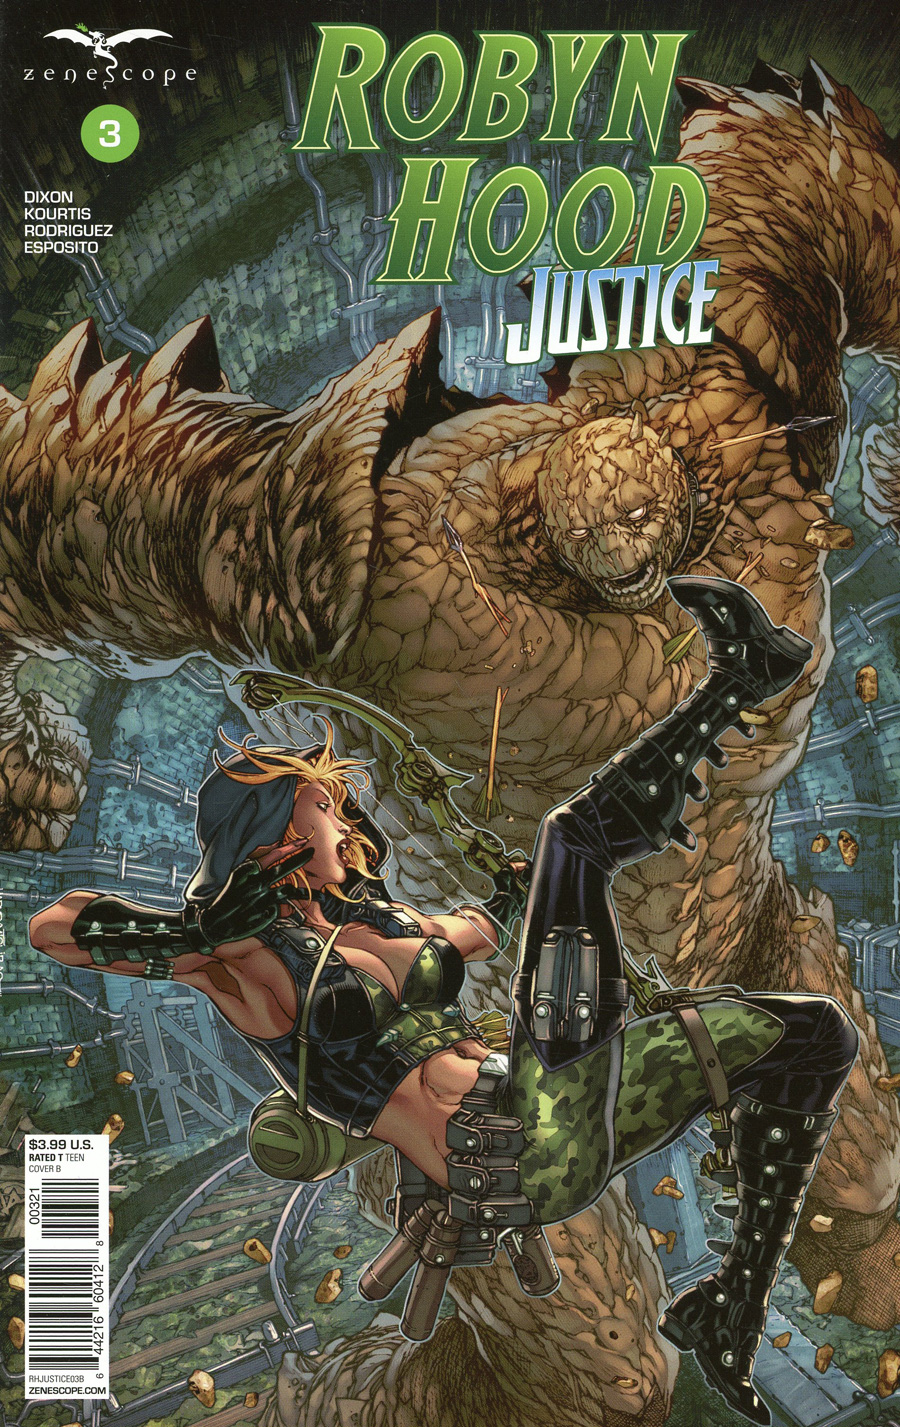 Grimm Fairy Tales Presents Robyn Hood Justice #3 Cover B Harvey Tolibao